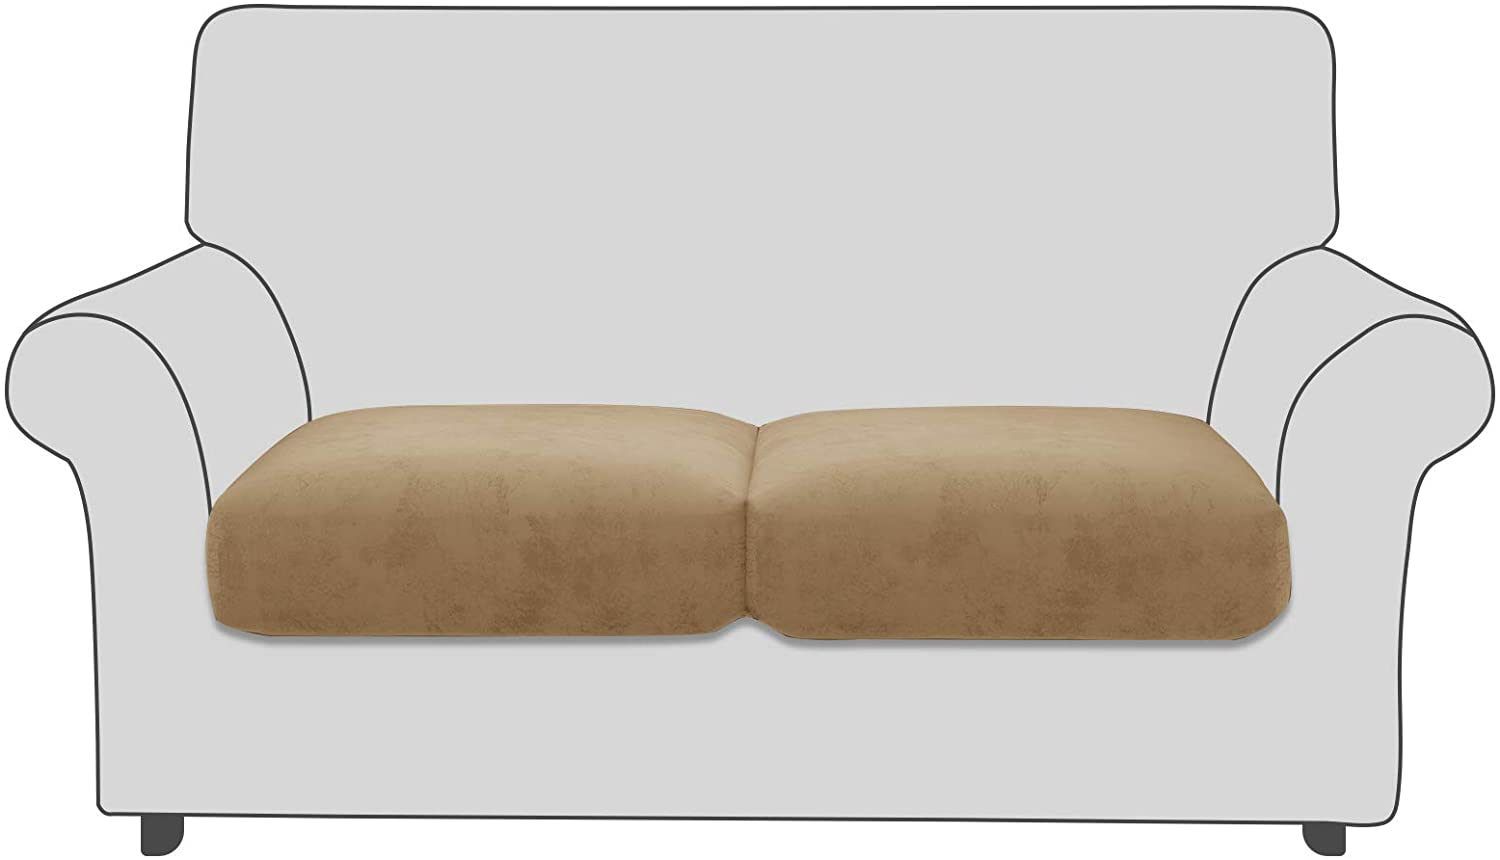 MAXIJIN Velvet Stretch Cushion Covers Fitted Plush Couch Cushion Slipcovers 2 Pack Loveseat Couch Cushion Covers for Individual Cushions with Elastic Bottom (Loveseat Cushion, Camel)